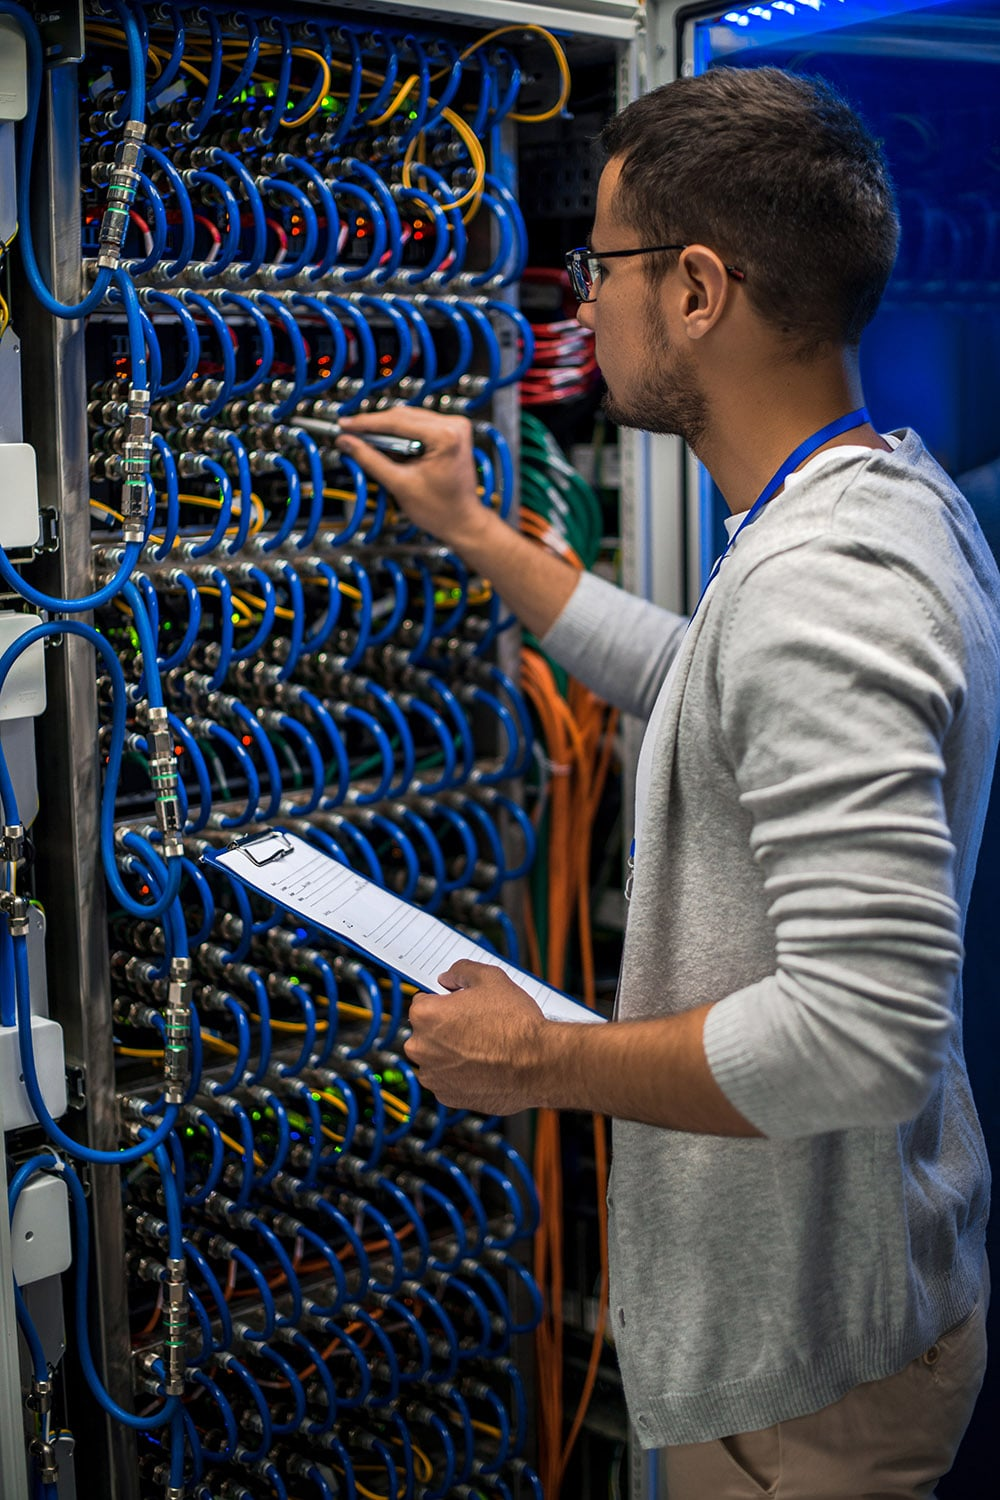 it-professional-working-with-servers-6LYBP4W-min.jpg